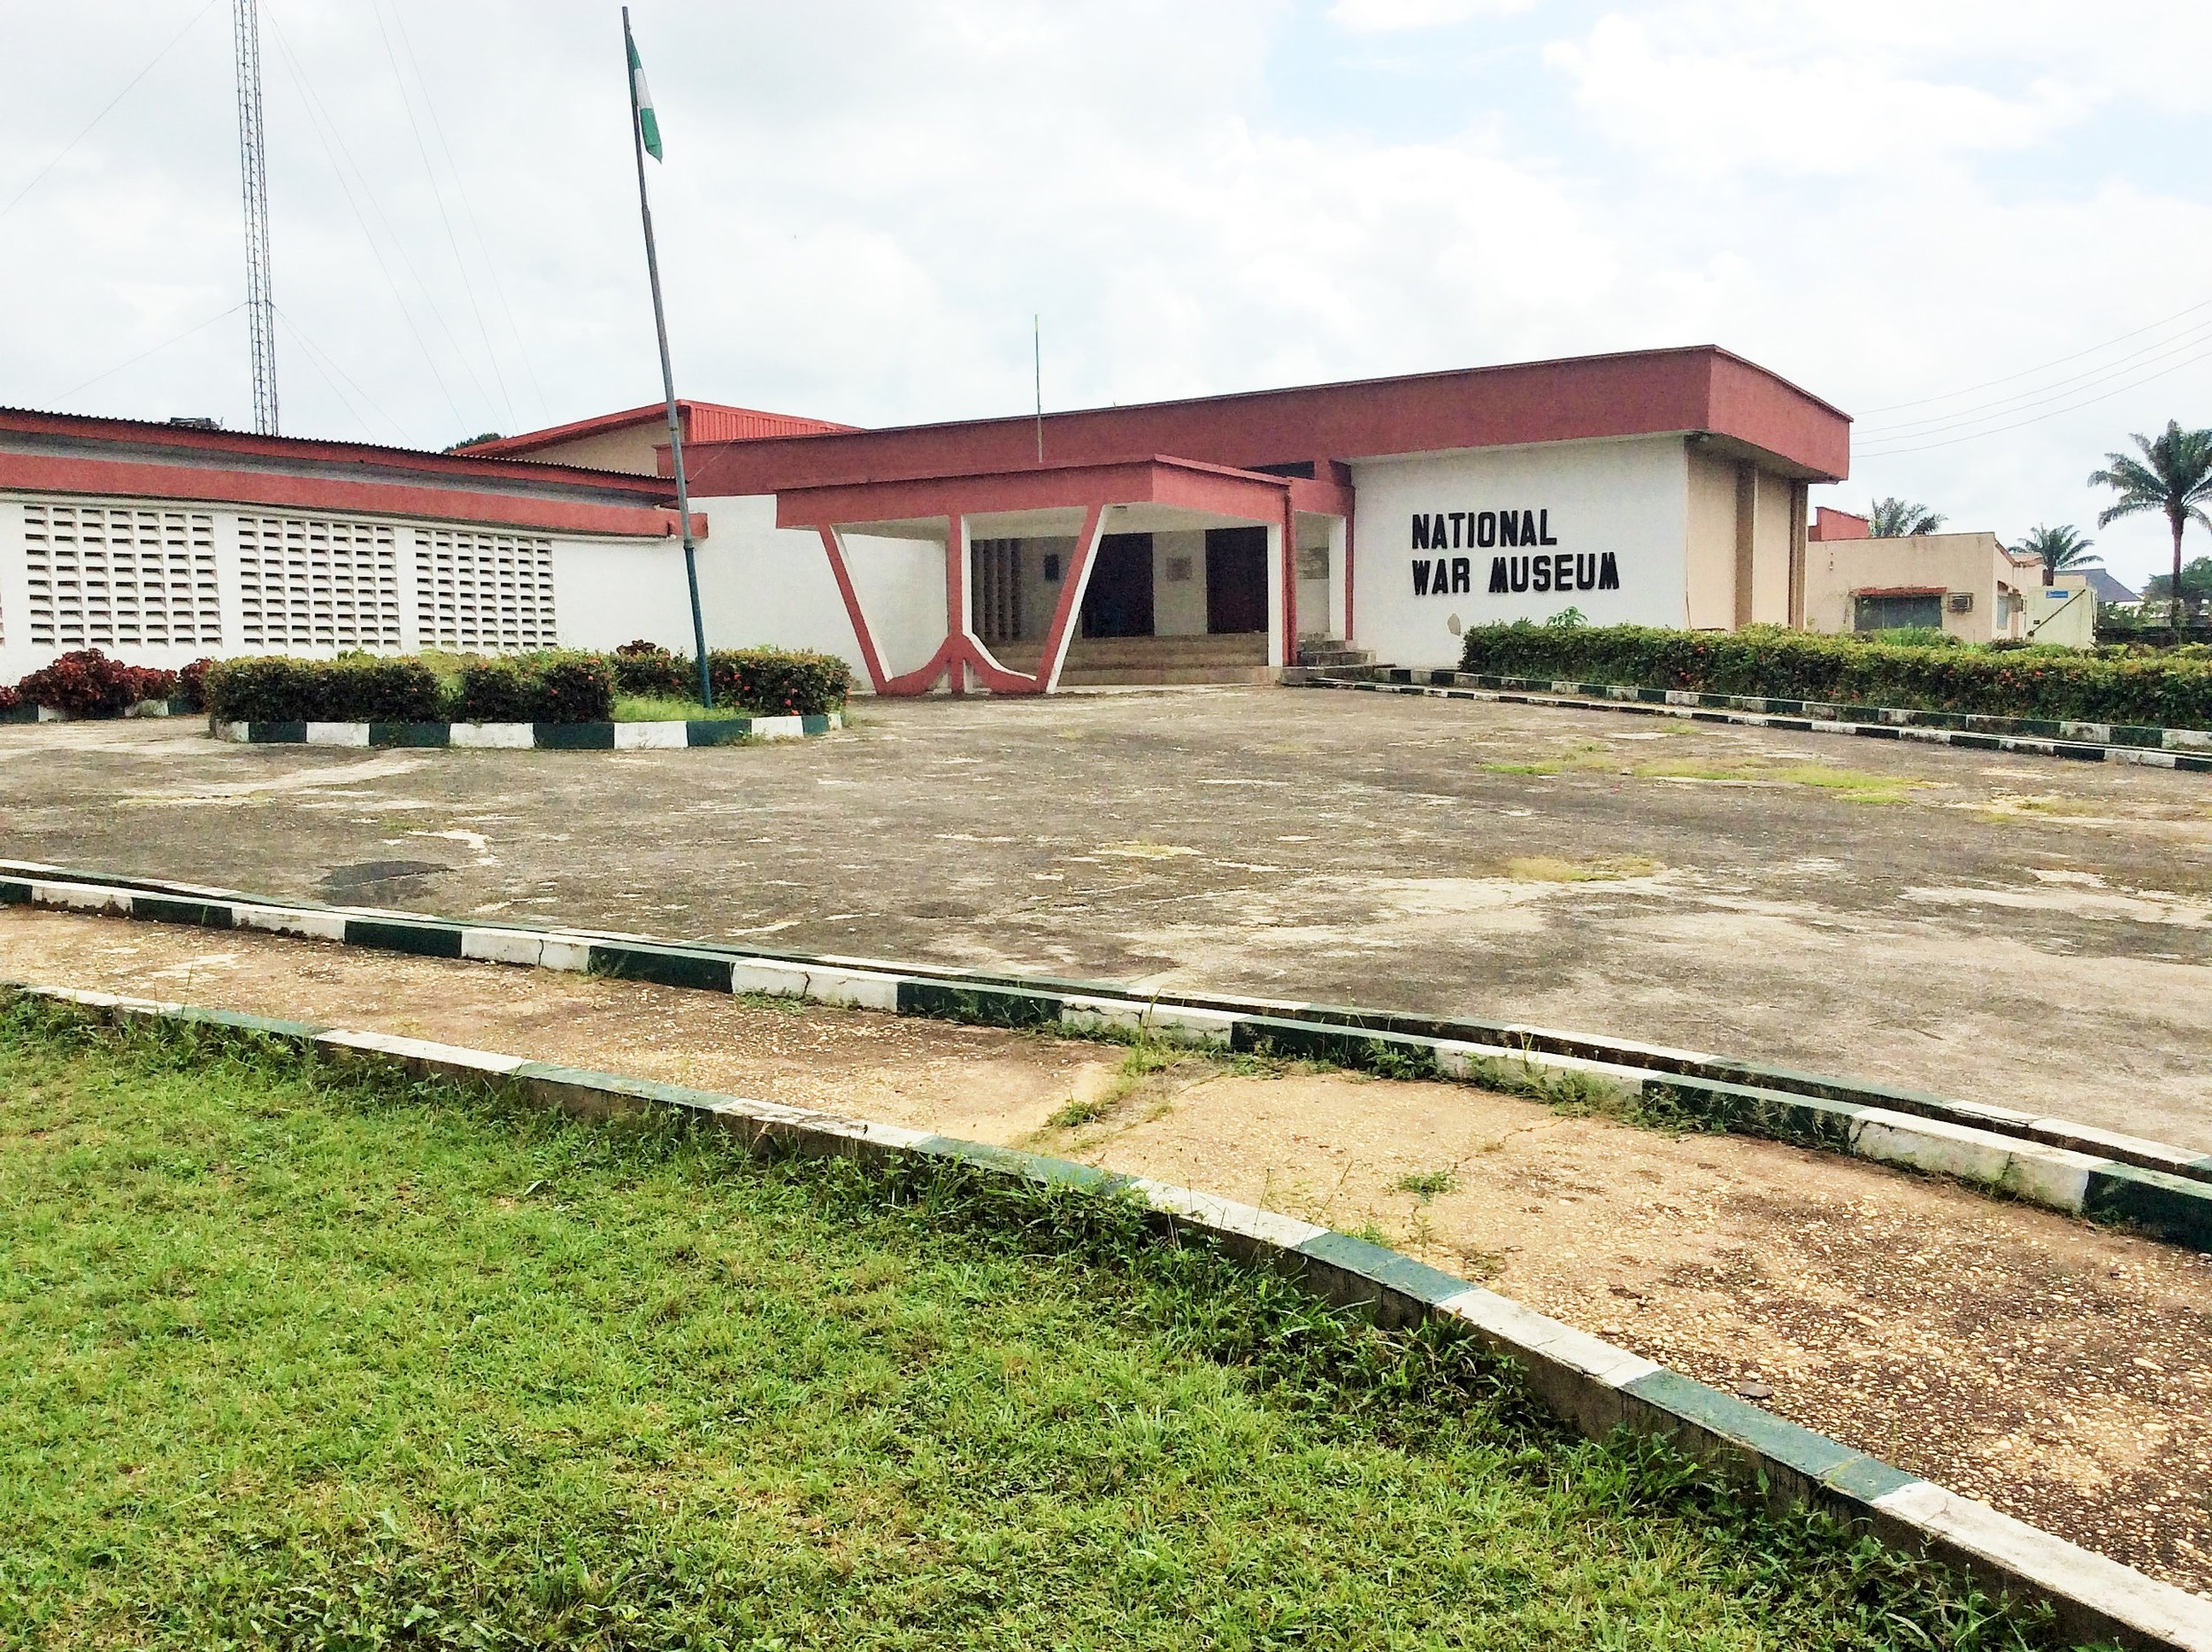 The museum was commissioned in 1985. It comprises of three galleries that cover traditional warfare, the armed forces and the Nigerian Civil War weapon galleries .